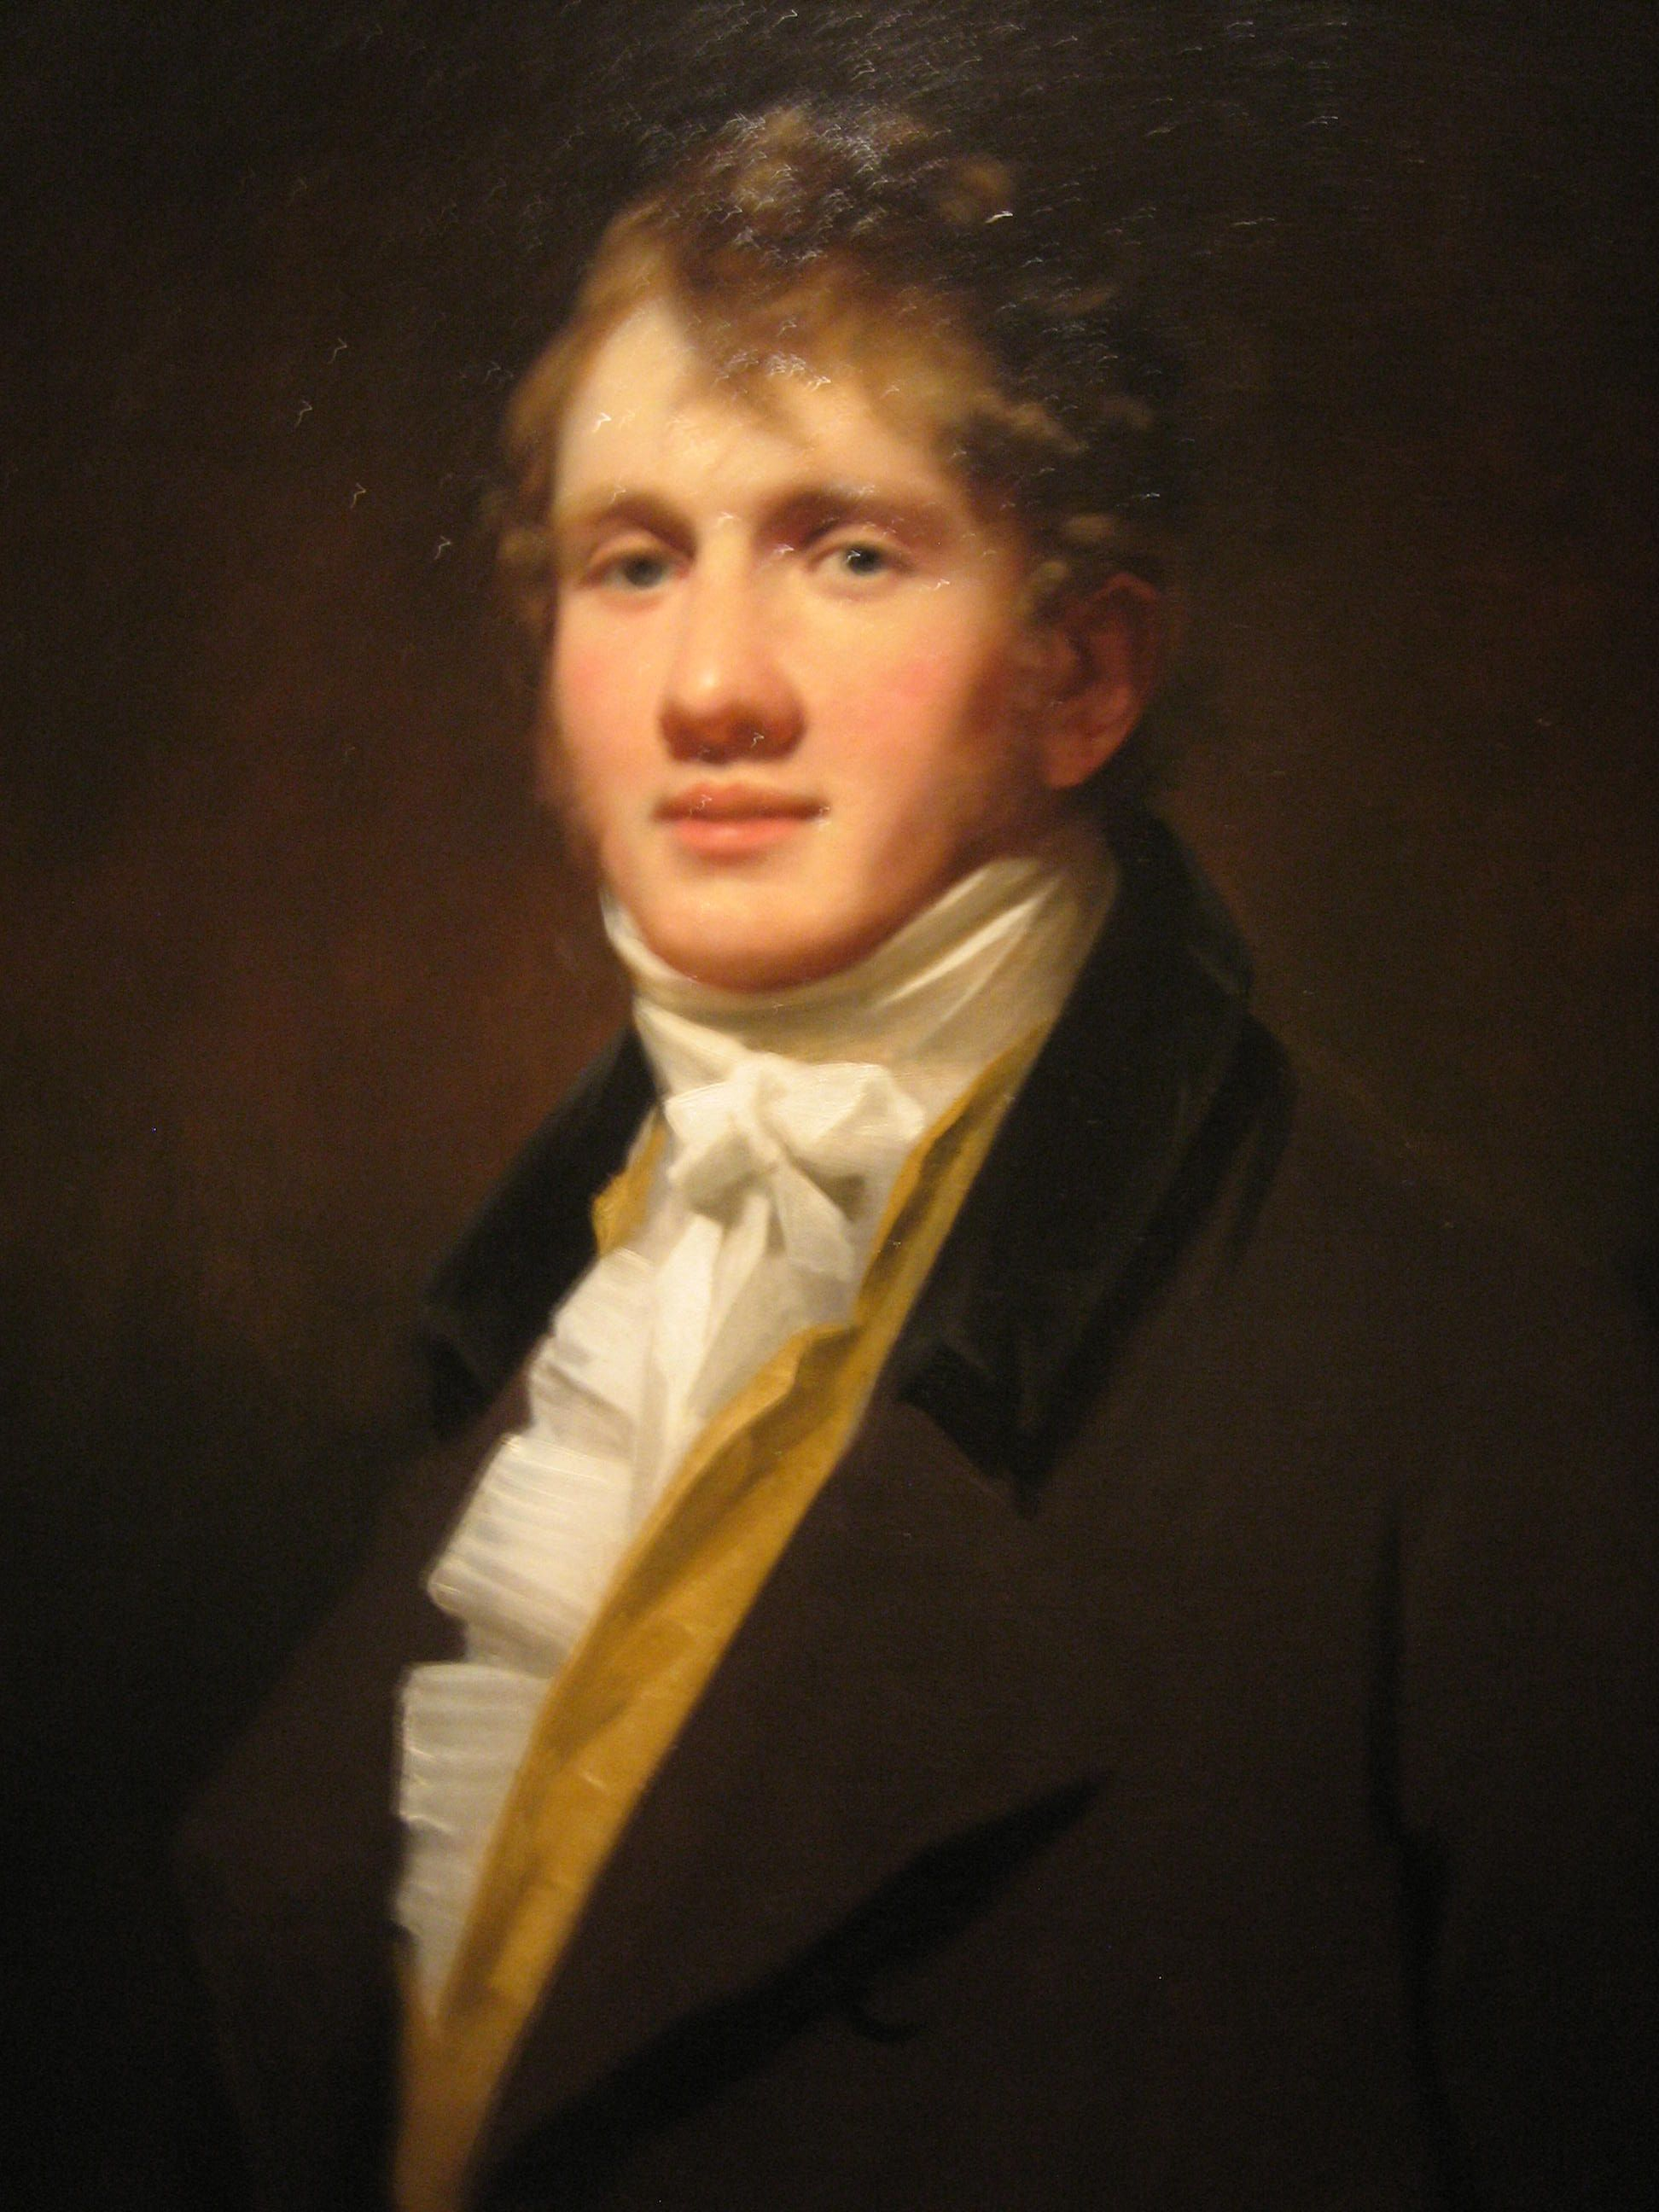 Painting of a young man from the 1810s